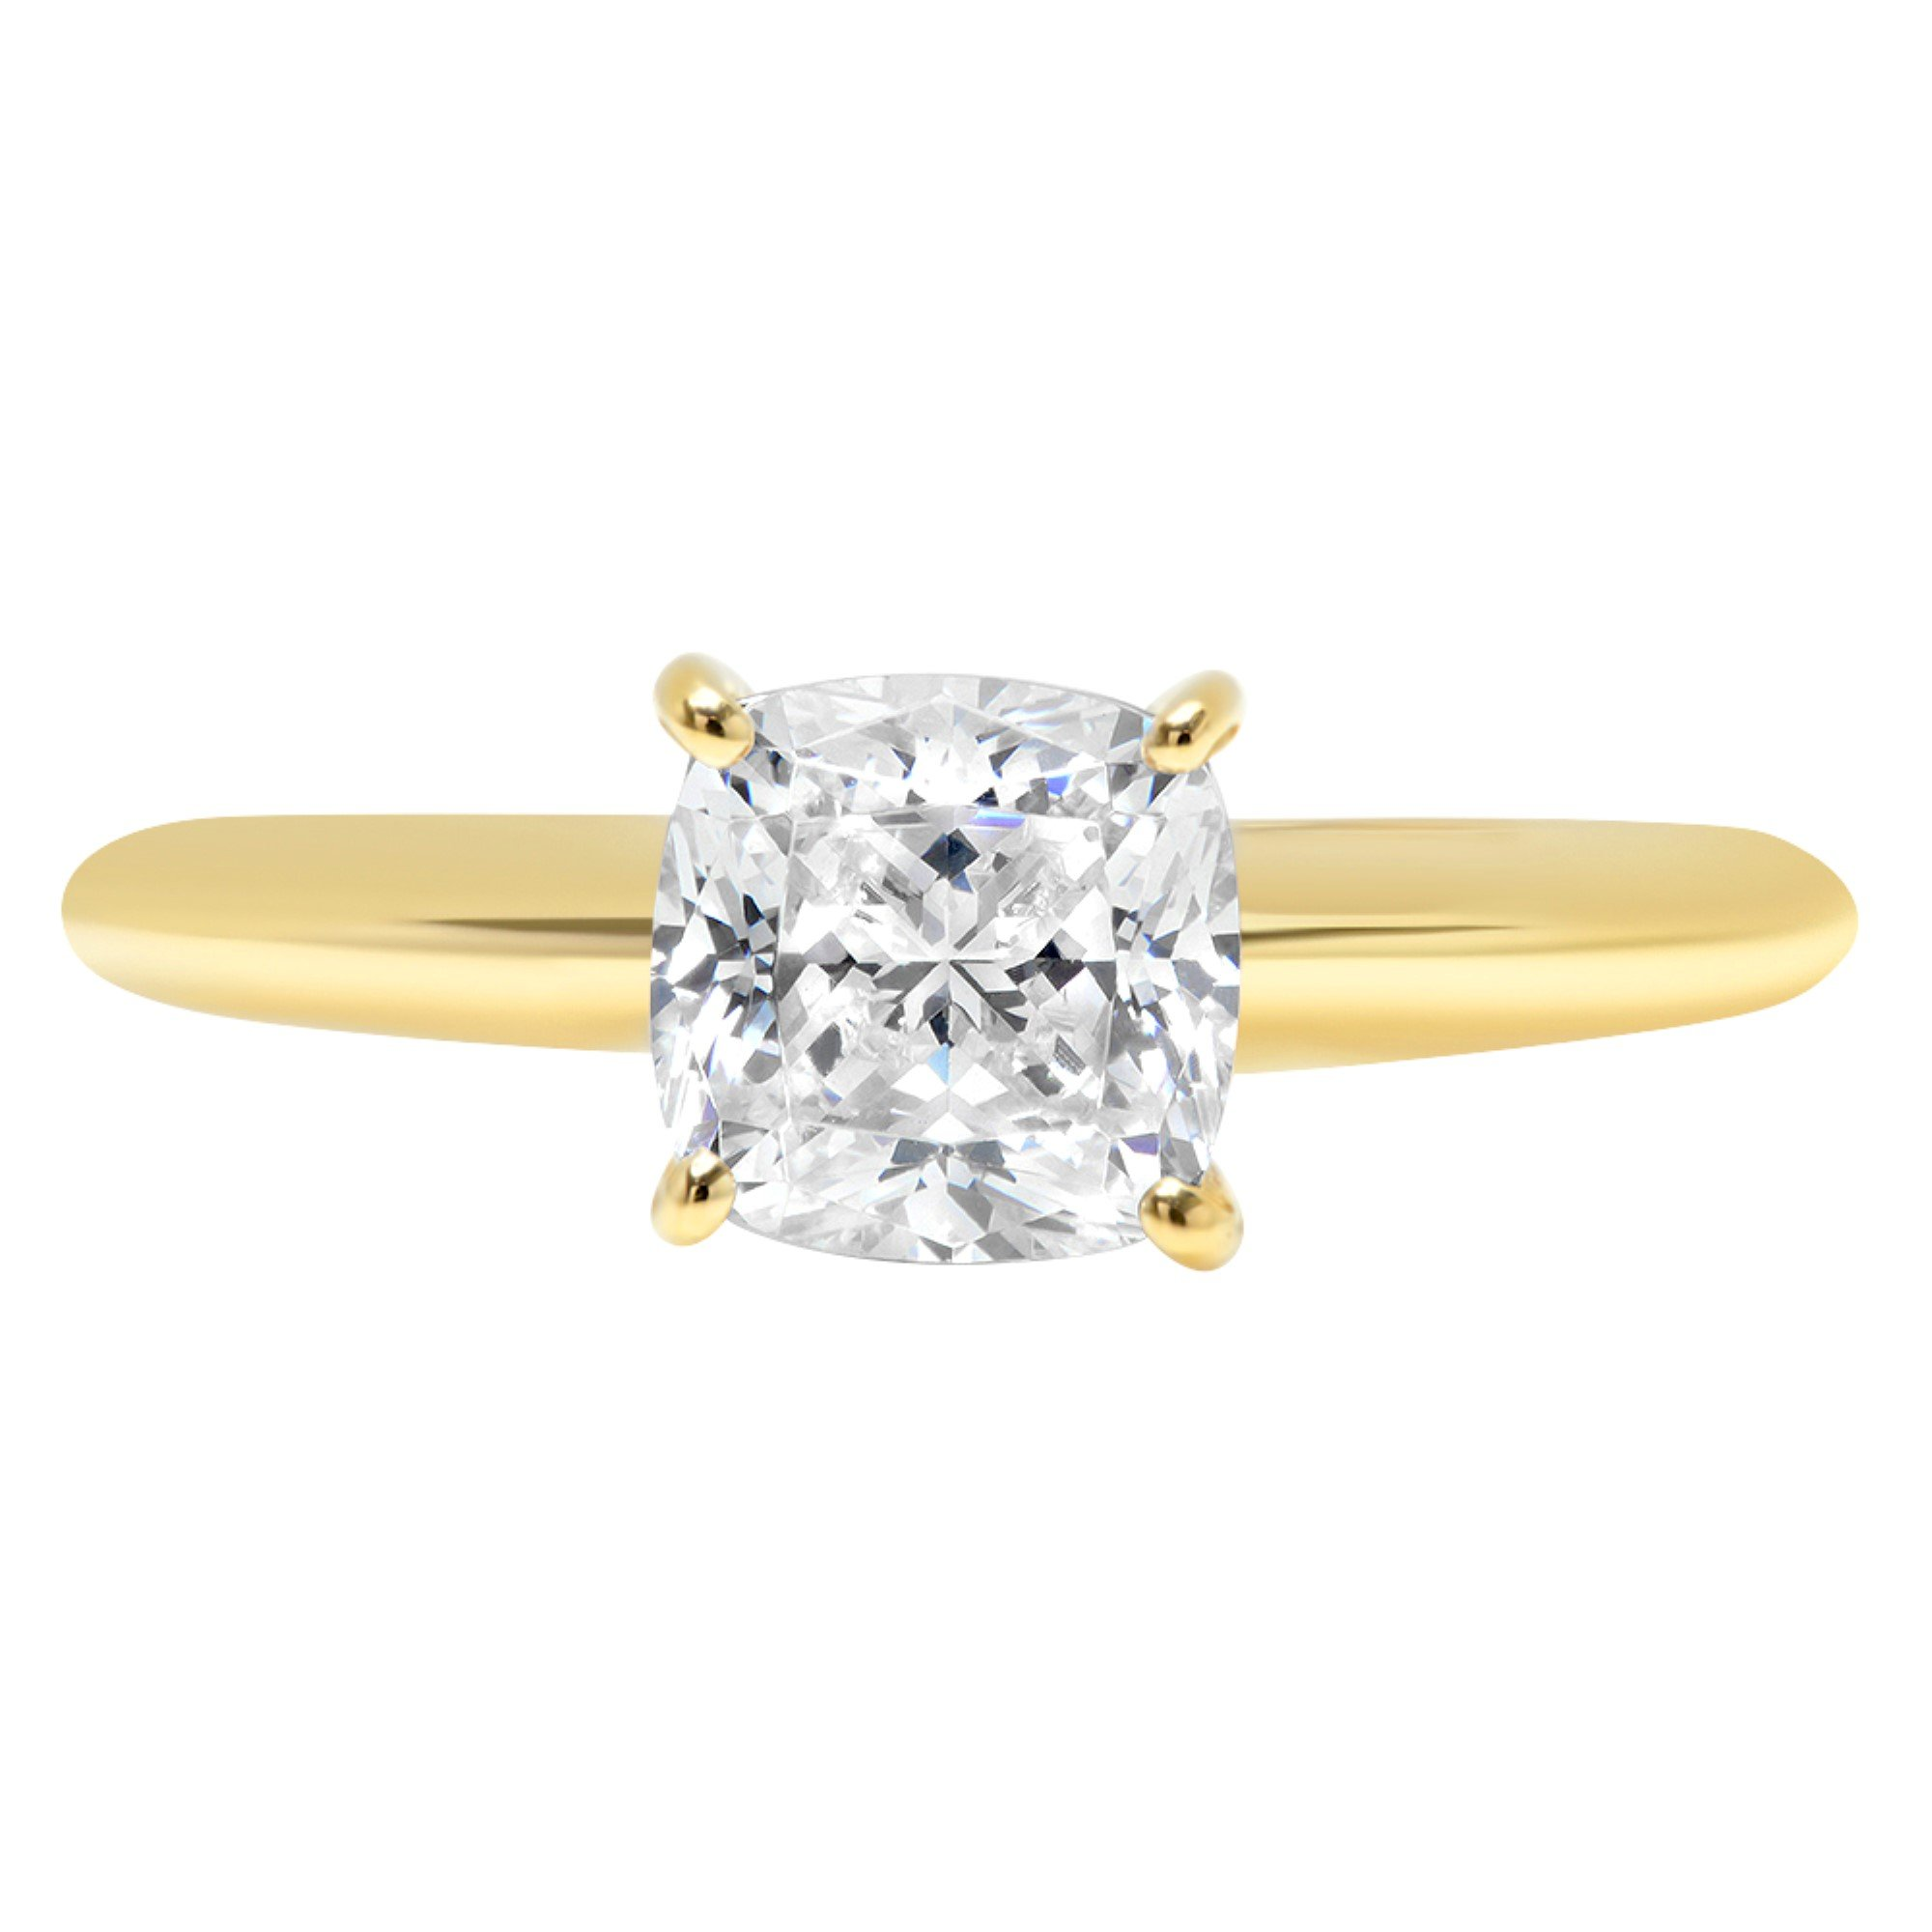 14k Yellow Gold 0.8ct Cushion Brilliant Cut Classic Solitaire Designer Wedding Bridal Statement Anniversary Engagement Promise Ring Solid, 9.5